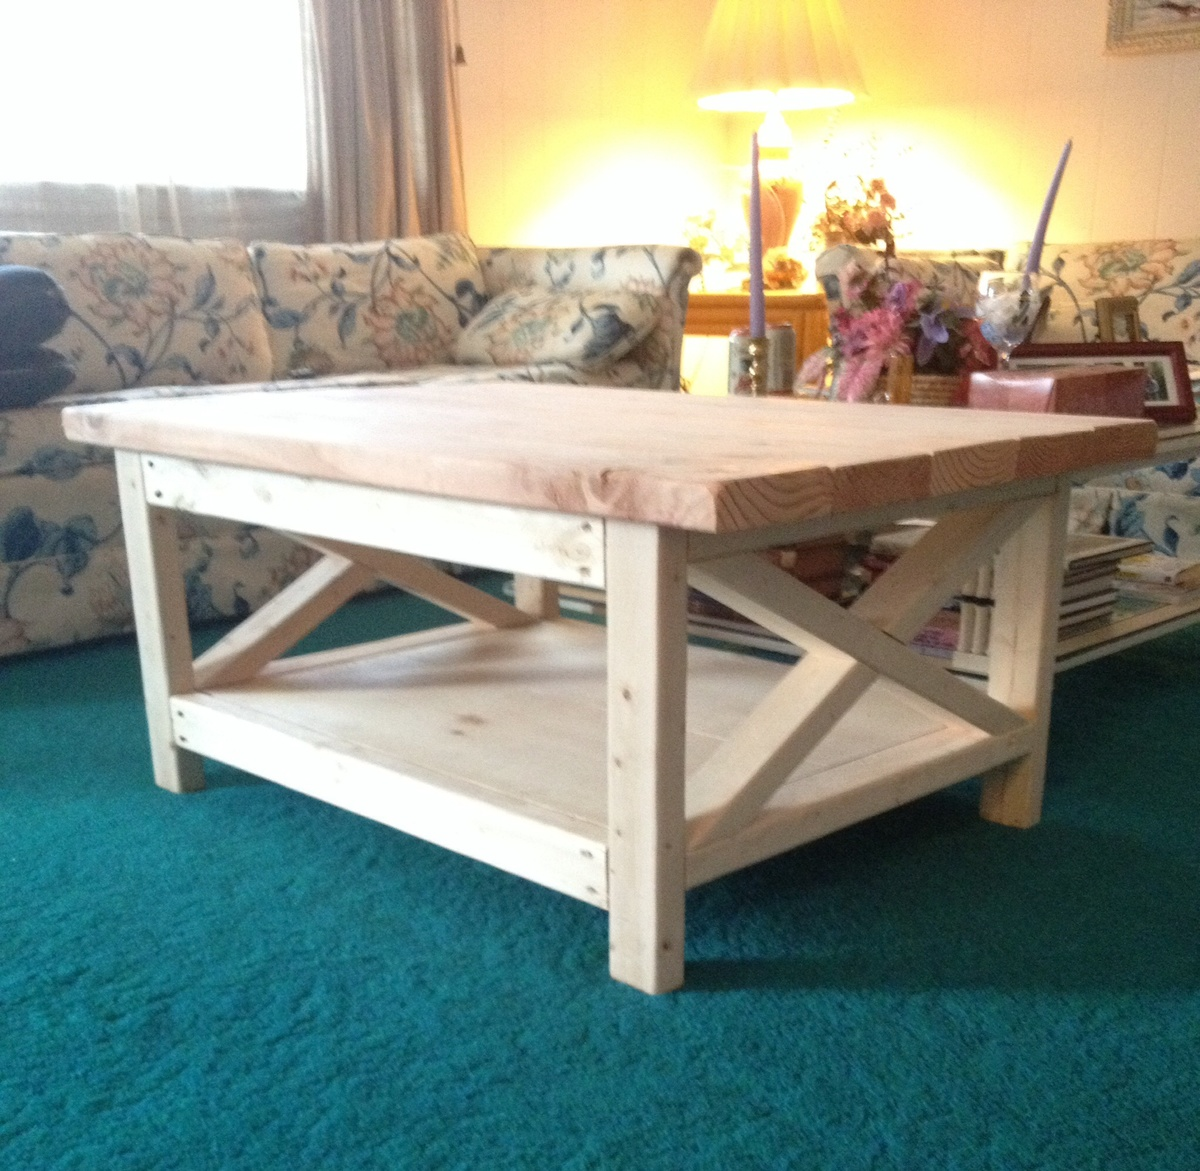 Rustic X Coffee Table - DIY Projects